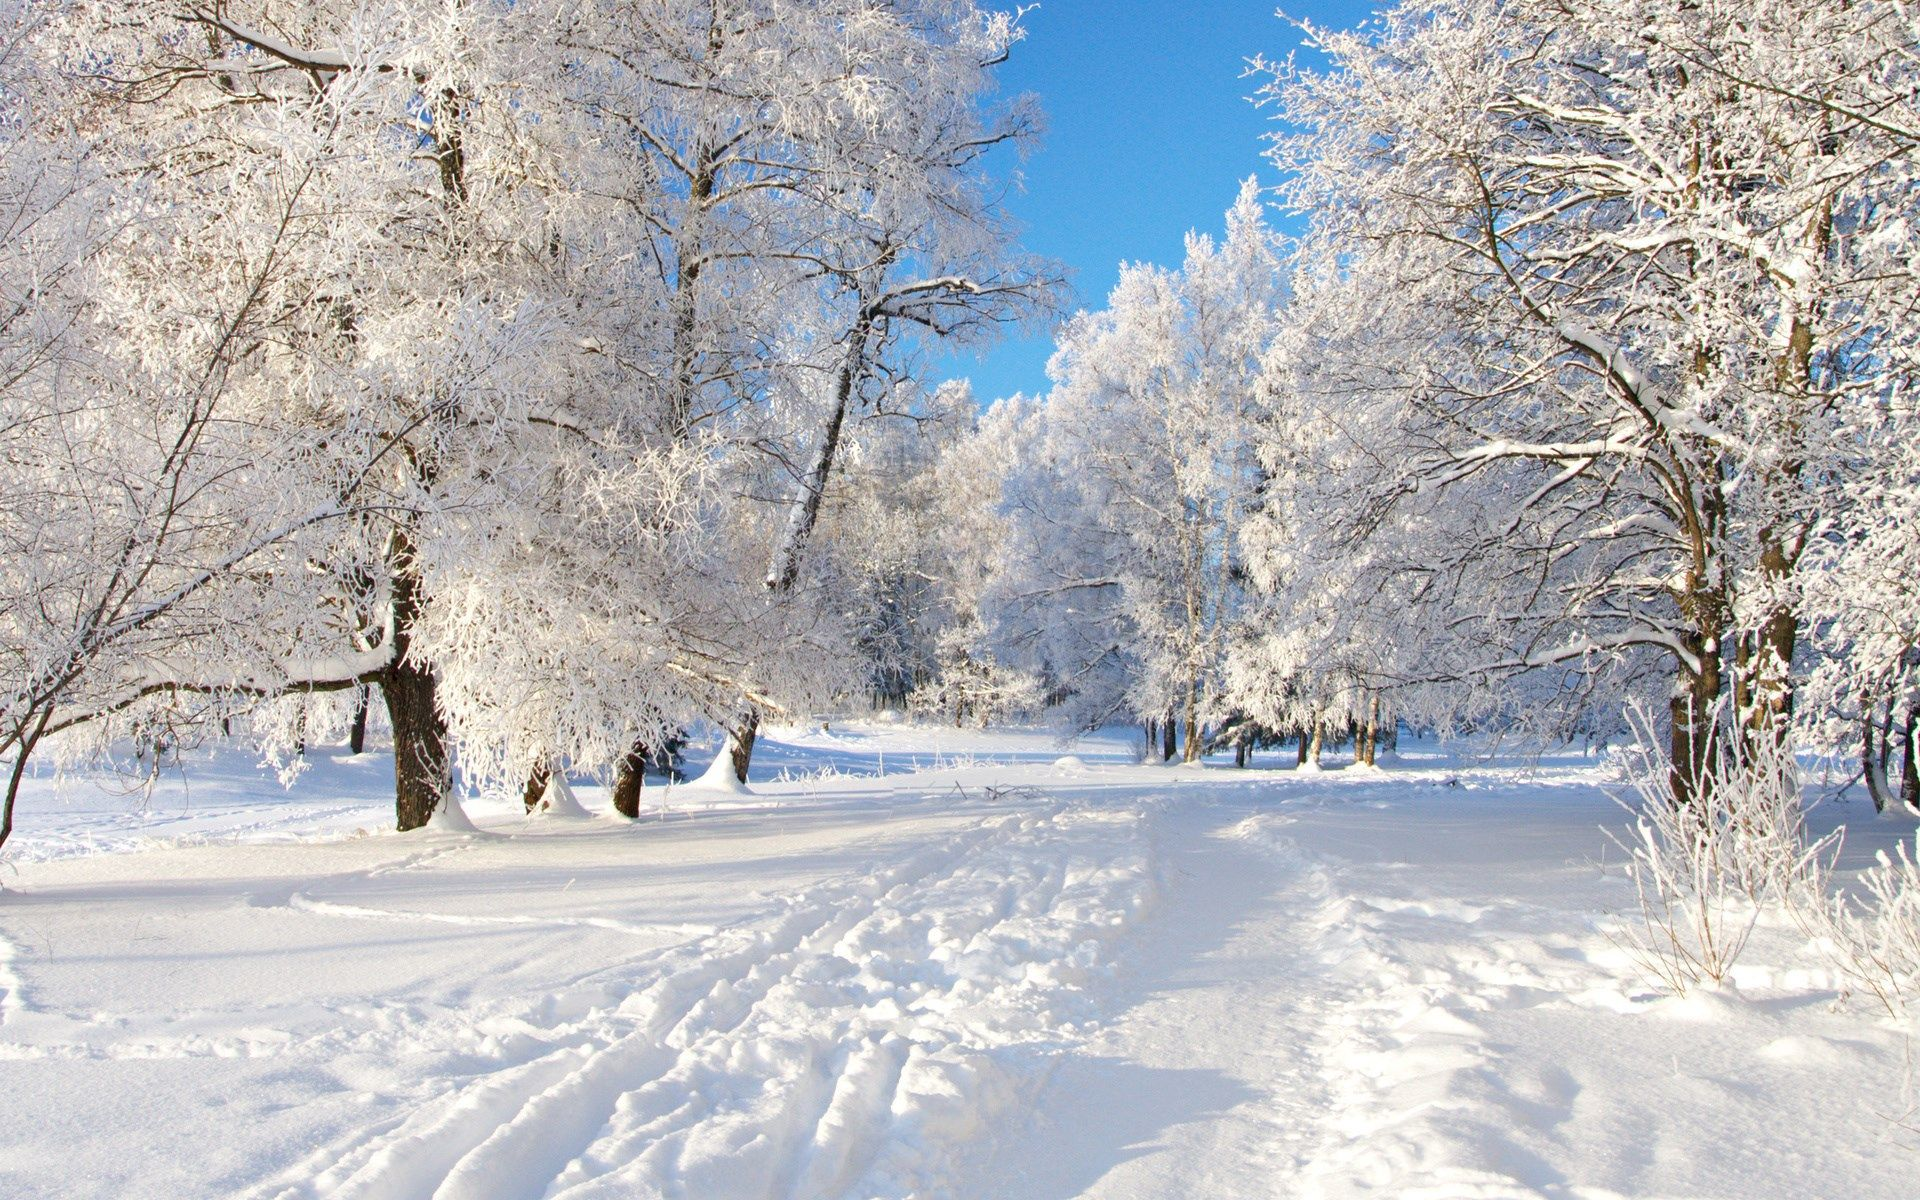 Hd Wallpaper Pc Nature 1920x1200 Winter Wonderland Pinterest